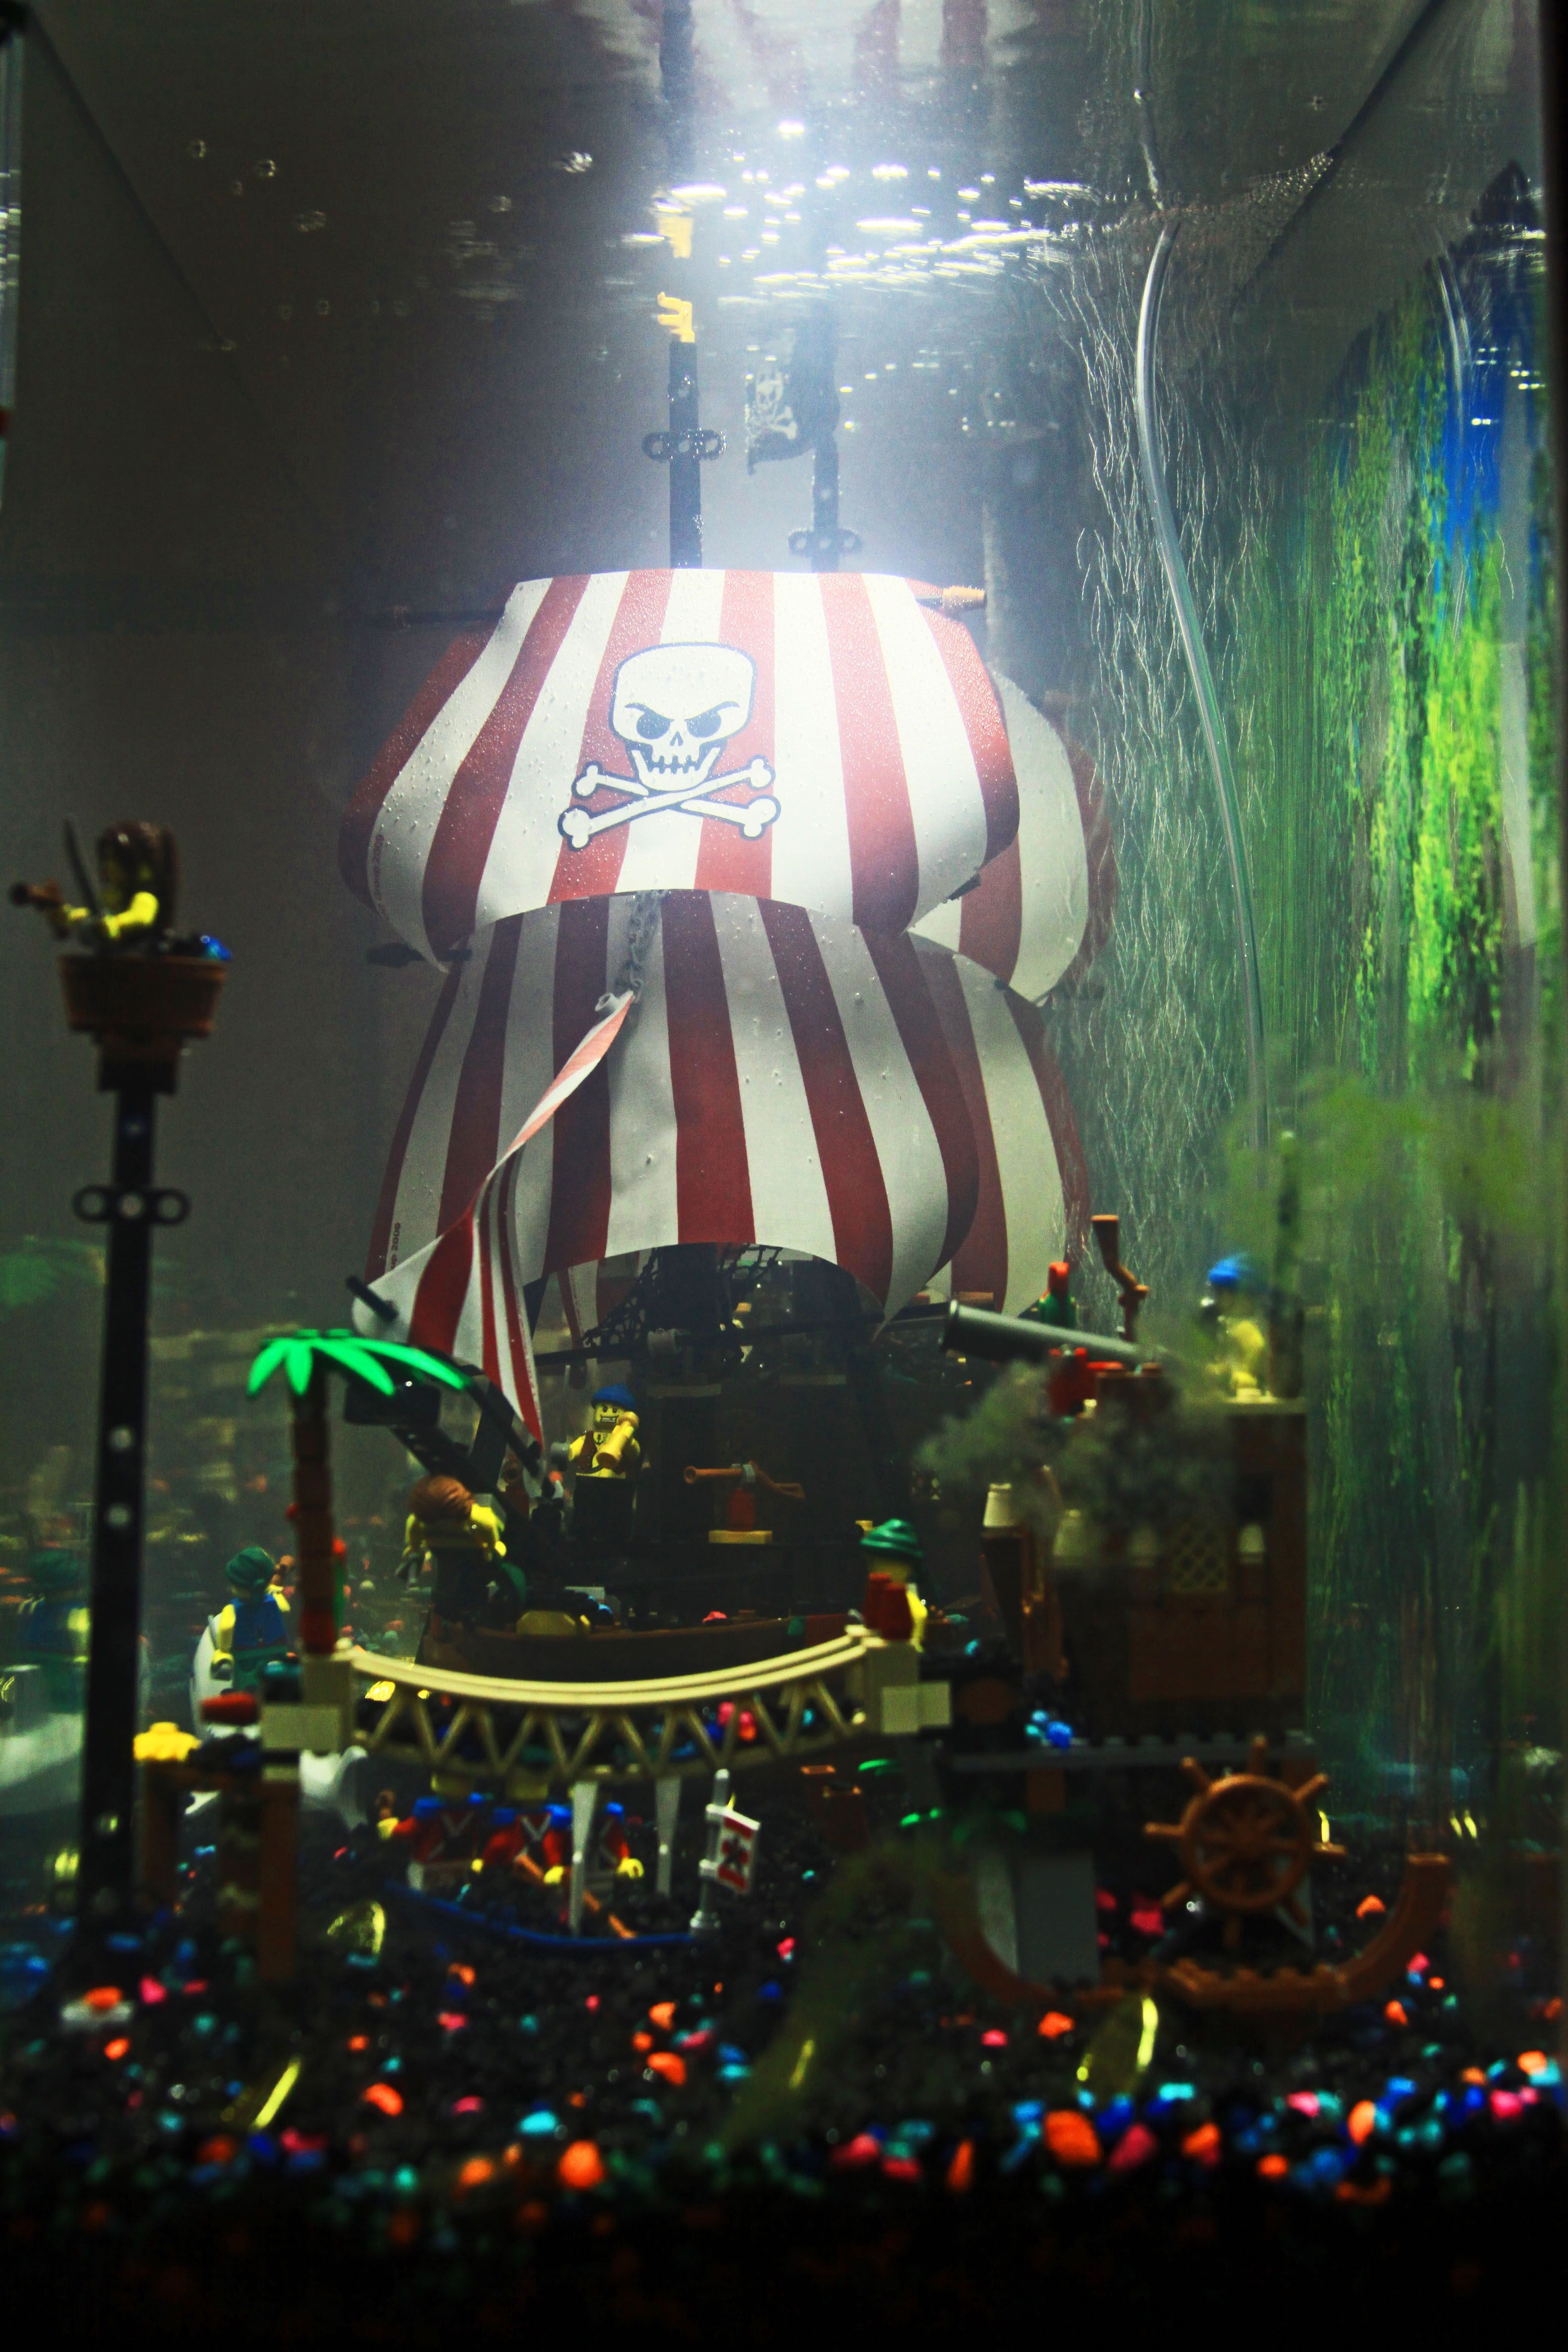 pirate lego fish tank home decor pinterest pirate. Black Bedroom Furniture Sets. Home Design Ideas